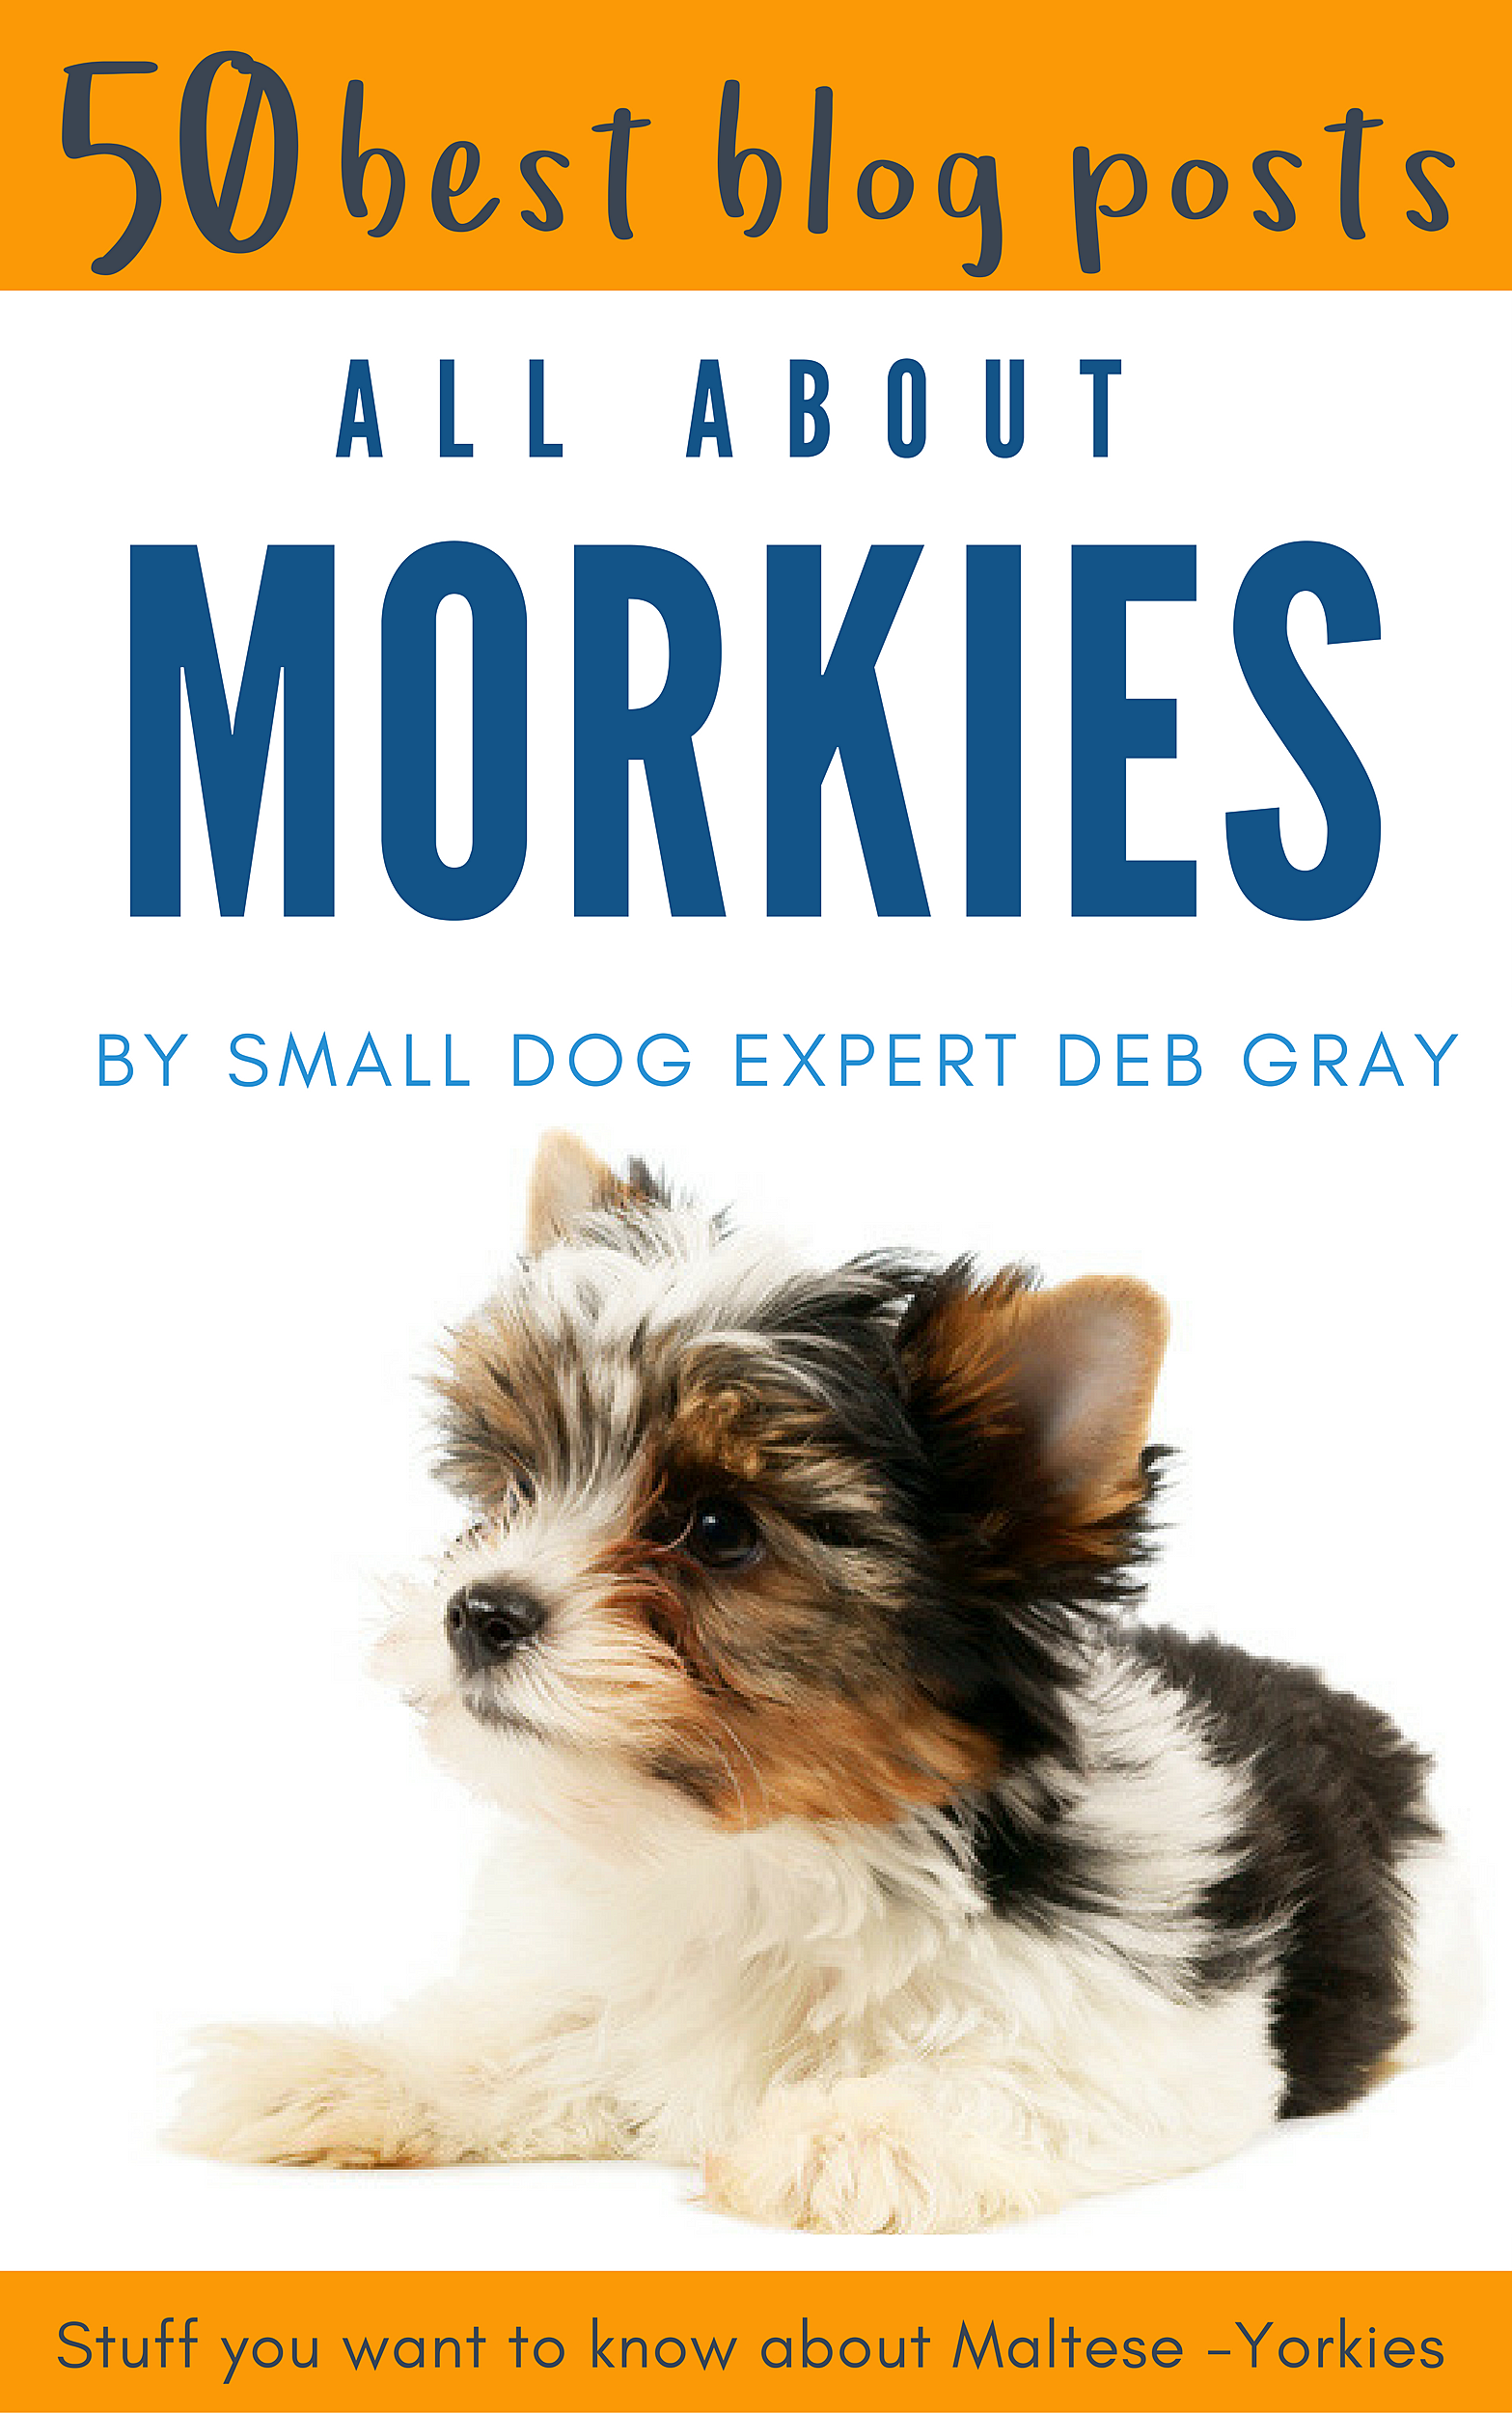 All-About-Morkies-50-Blogs-KINDLE Helpful Morkie Resources